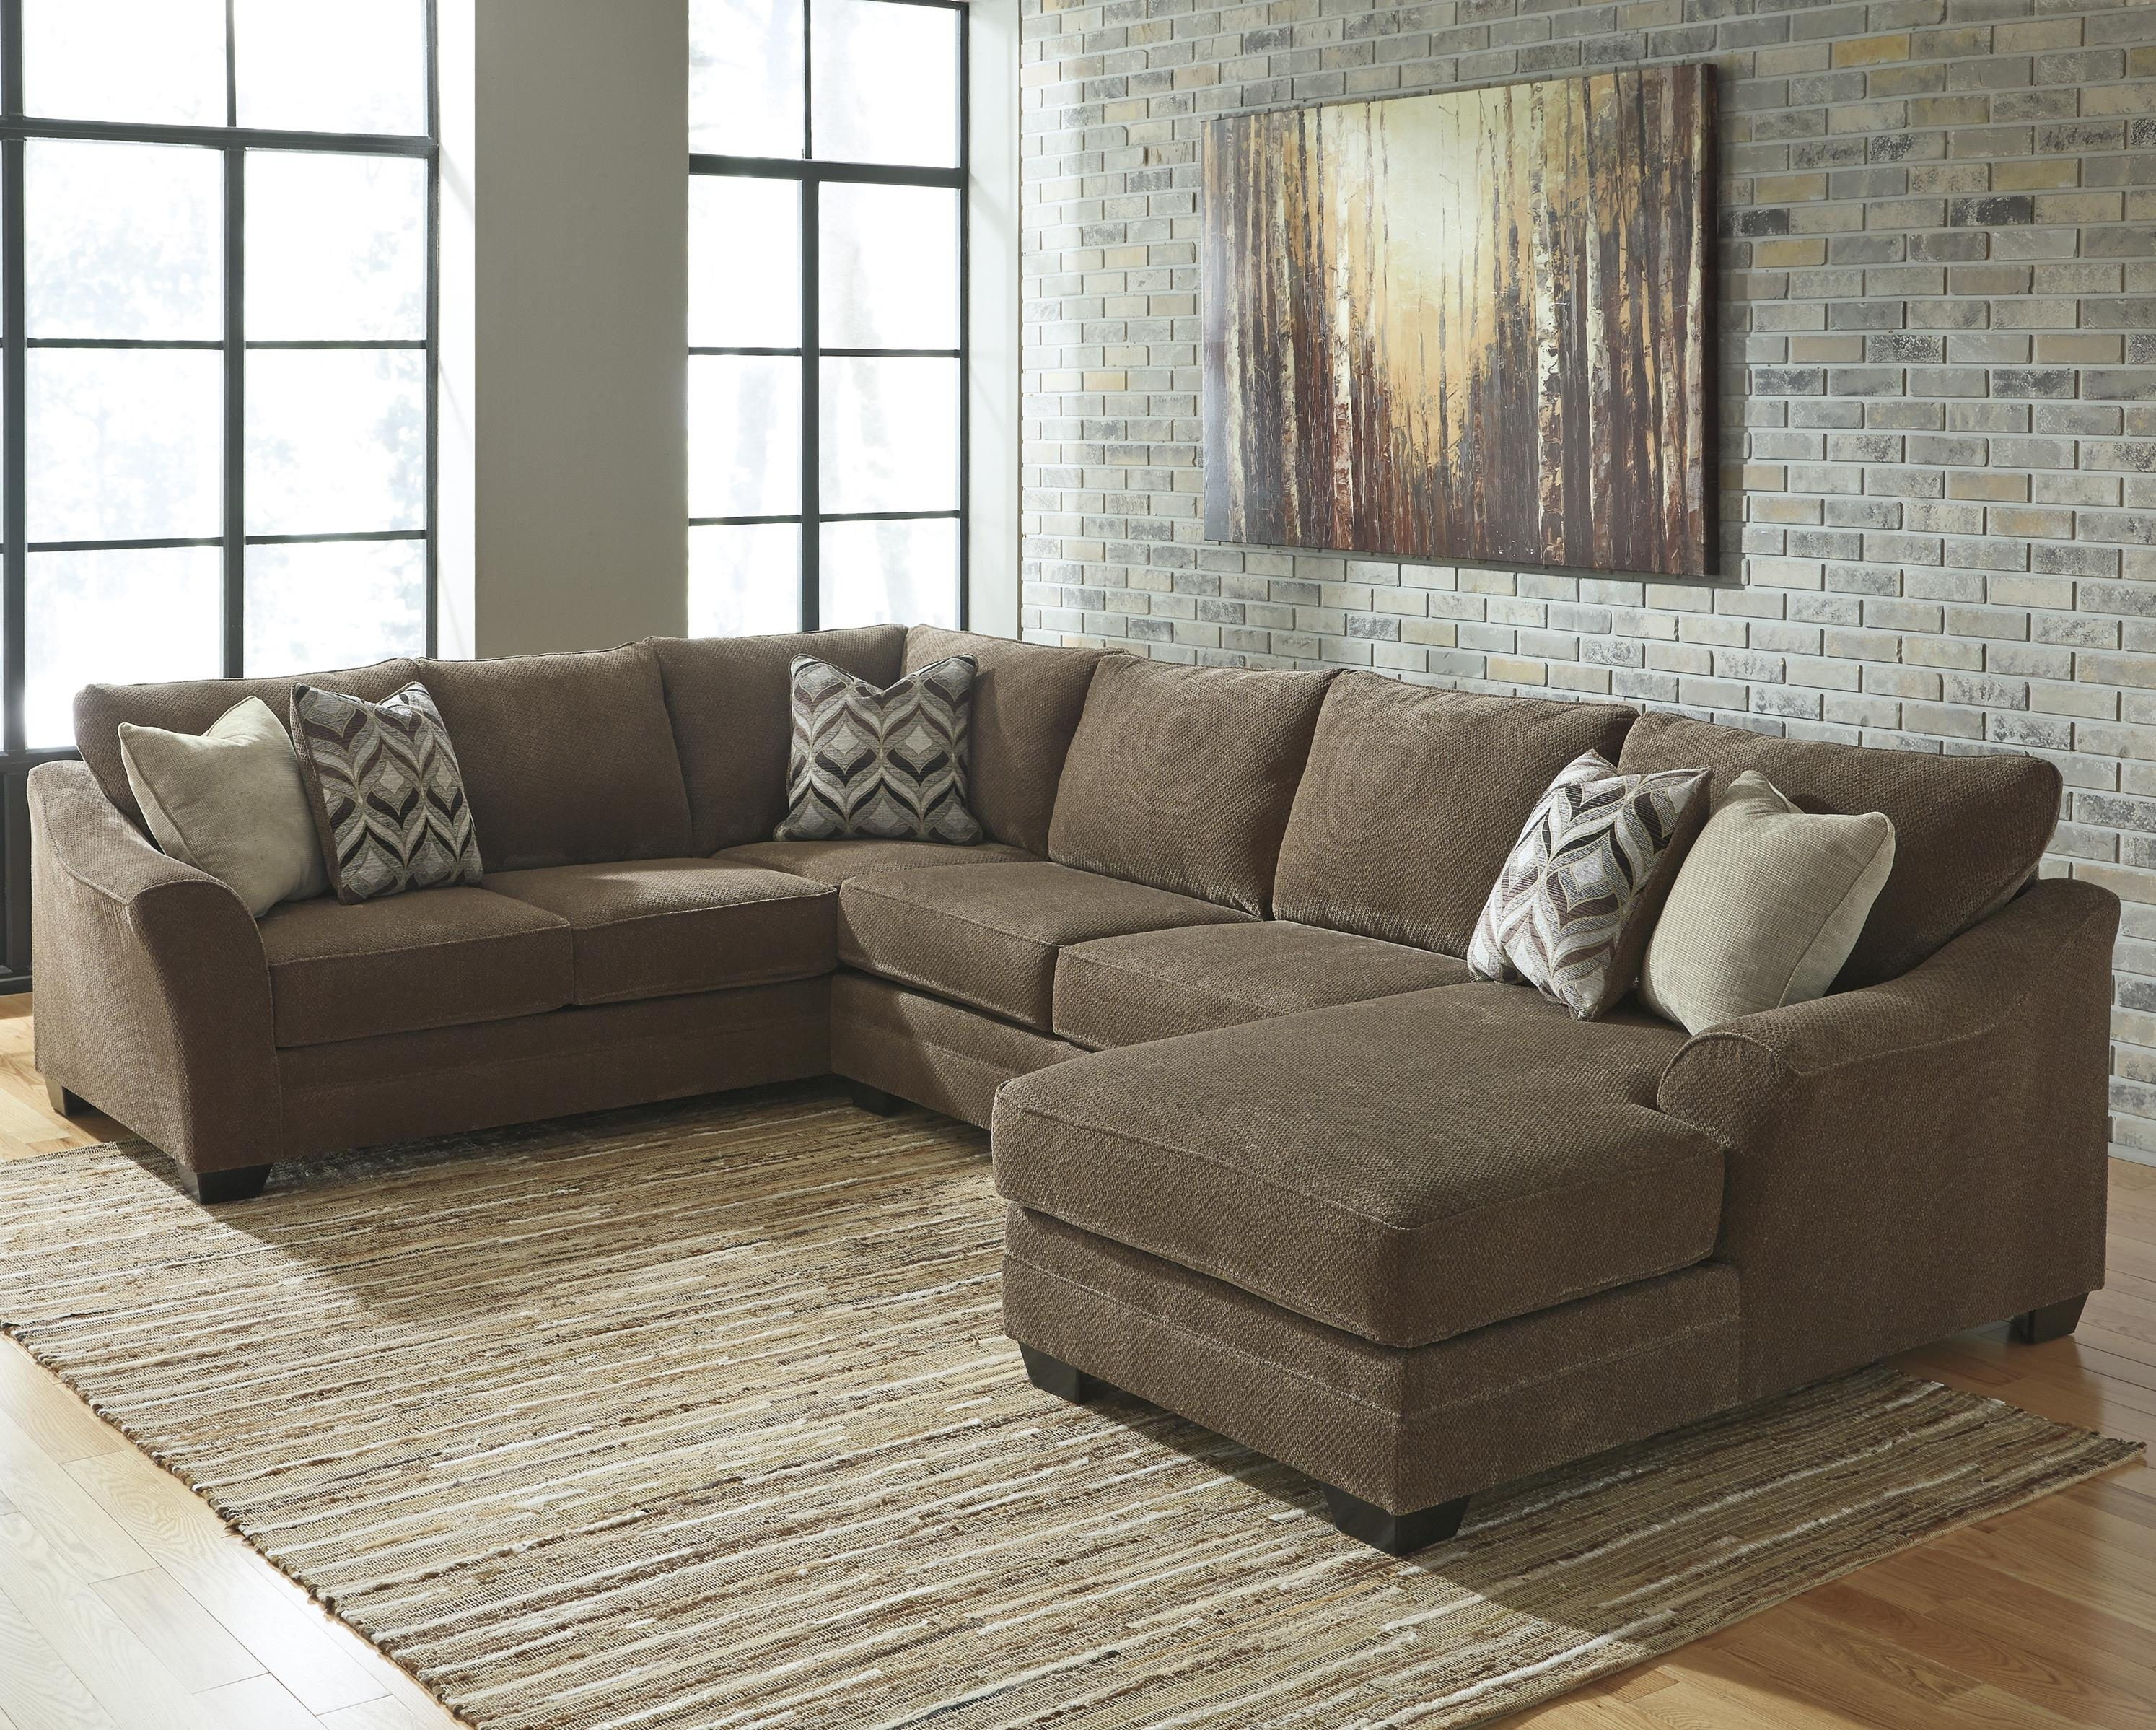 Right Sectional Sofa Denim Sofas Left Arm Ivy Polyester Facing With in Regina Sectional Sofas (Image 6 of 10)